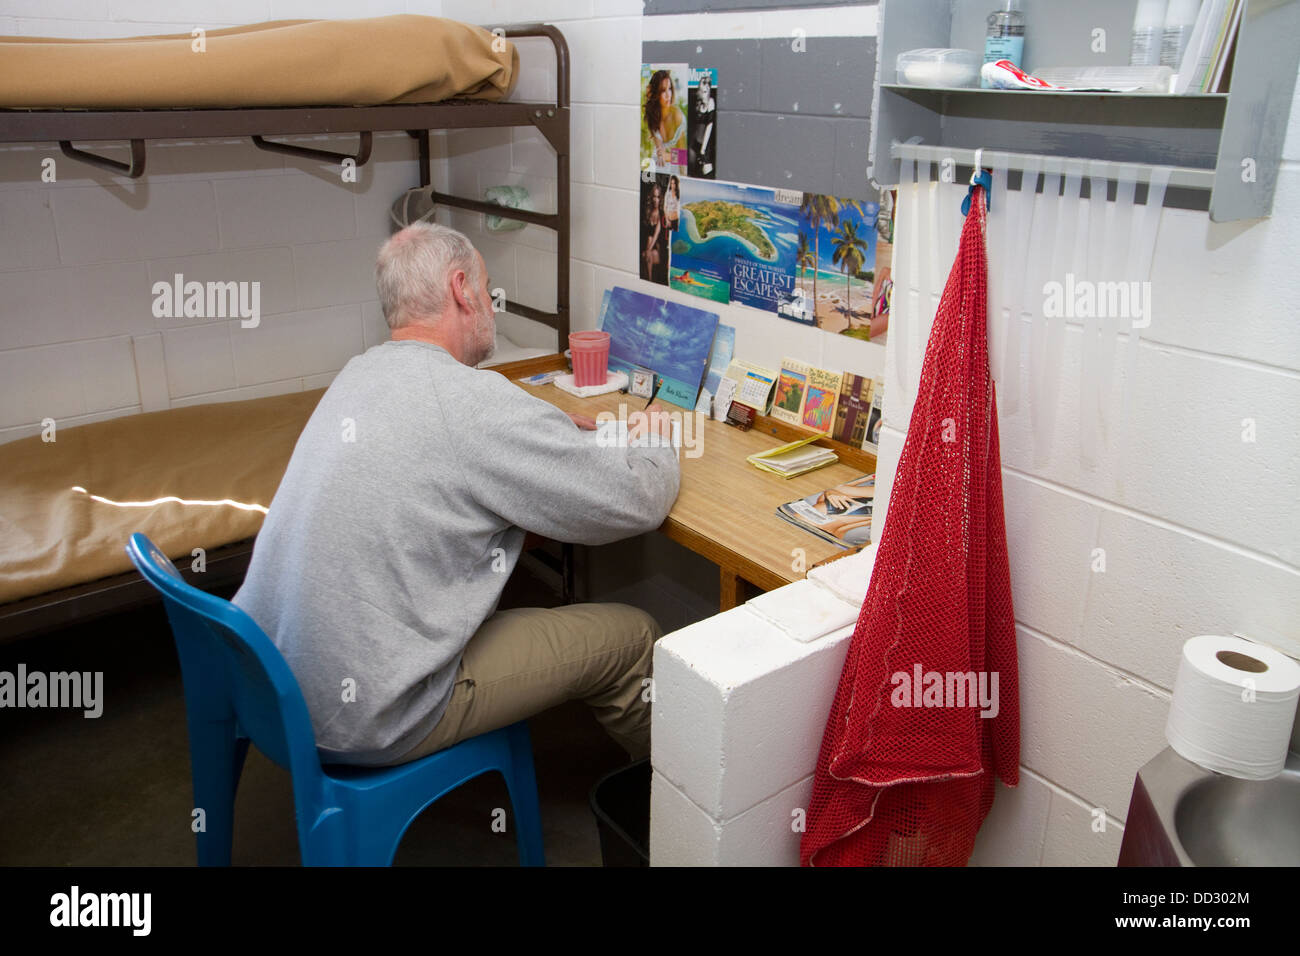 Inmate alone in cell writing a letter. Work release, minimum security prison, Lincoln, Nebraska, USA. - Stock Image